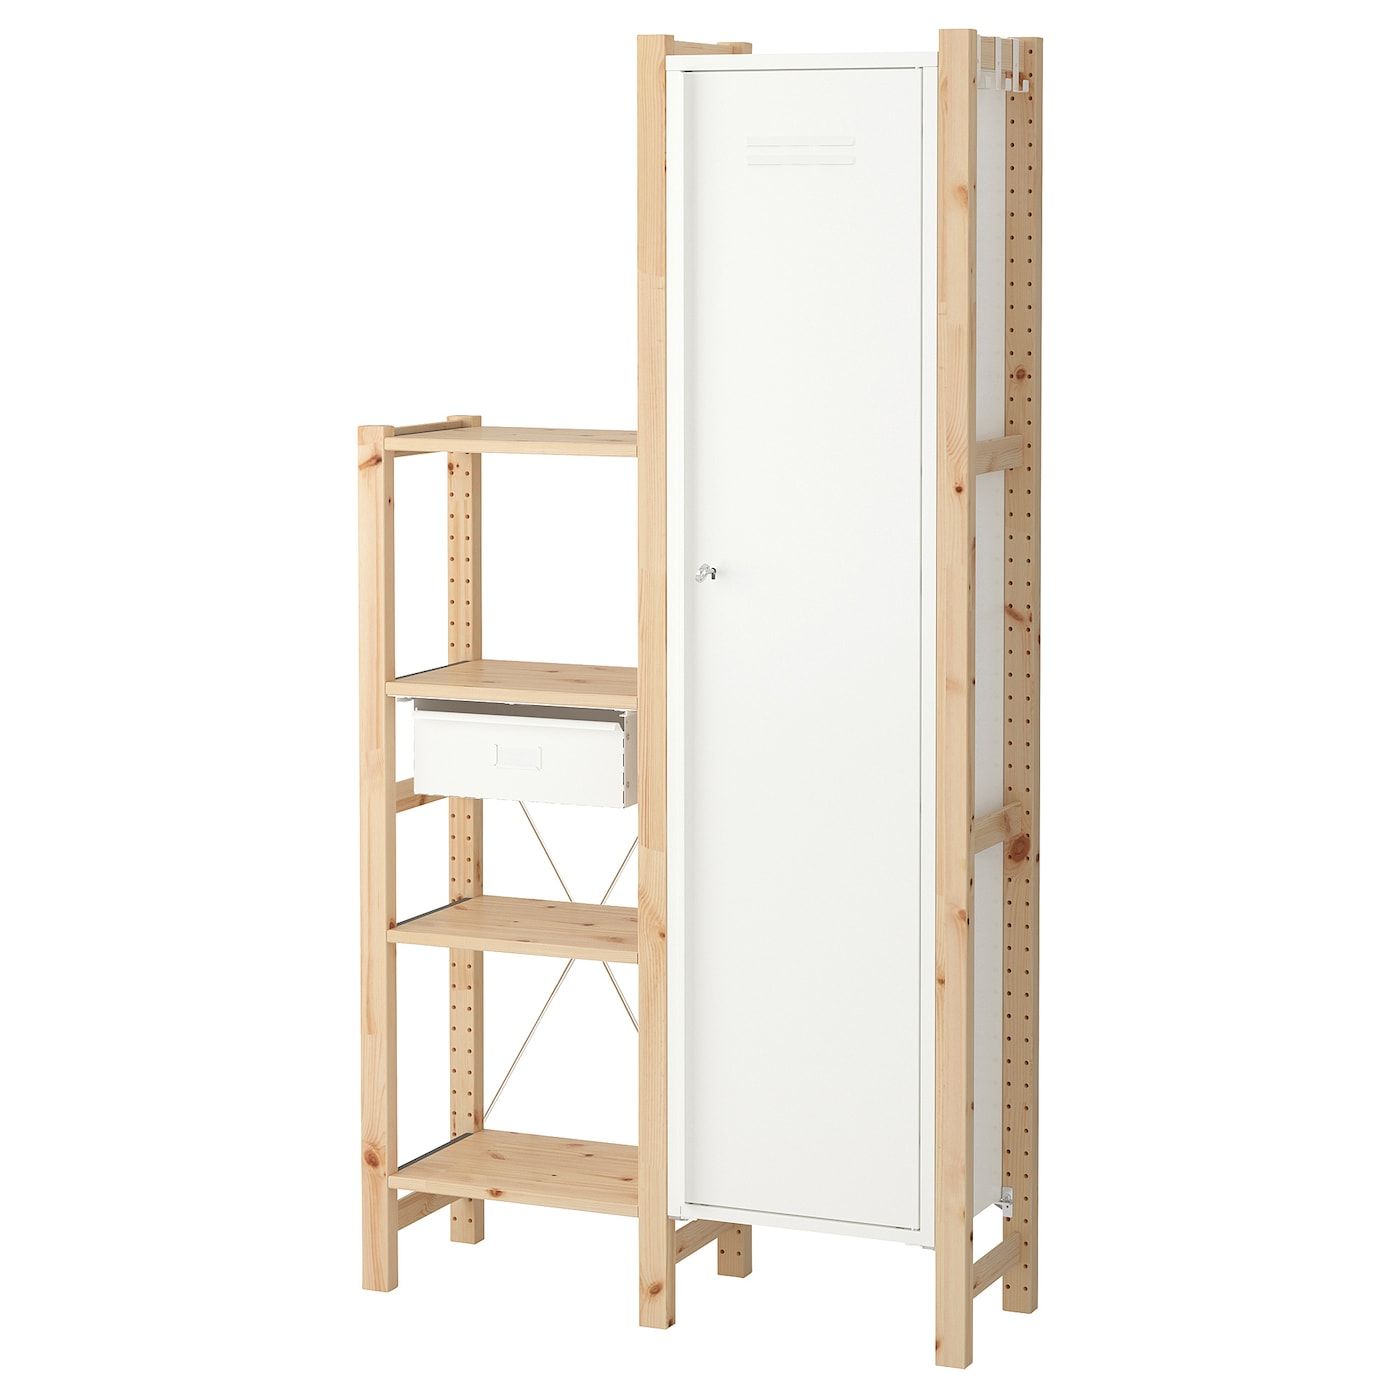 ivar 2 sections shelves cabinet pine white 92 x 30 x 179 cm ikea. Black Bedroom Furniture Sets. Home Design Ideas